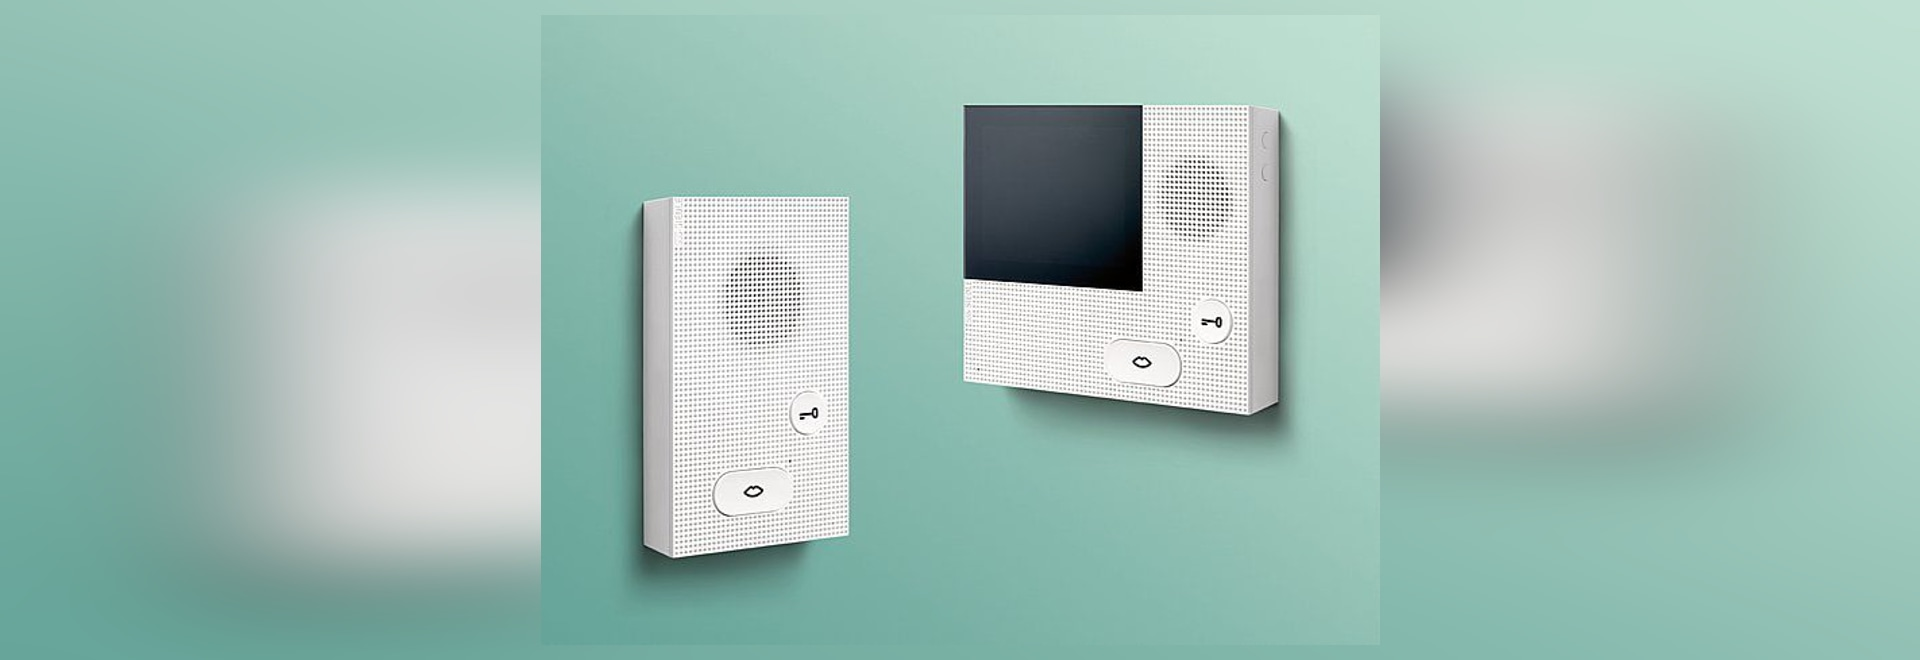 nouveautÉ : interphone audio blanc by sss siedle - sss siedle